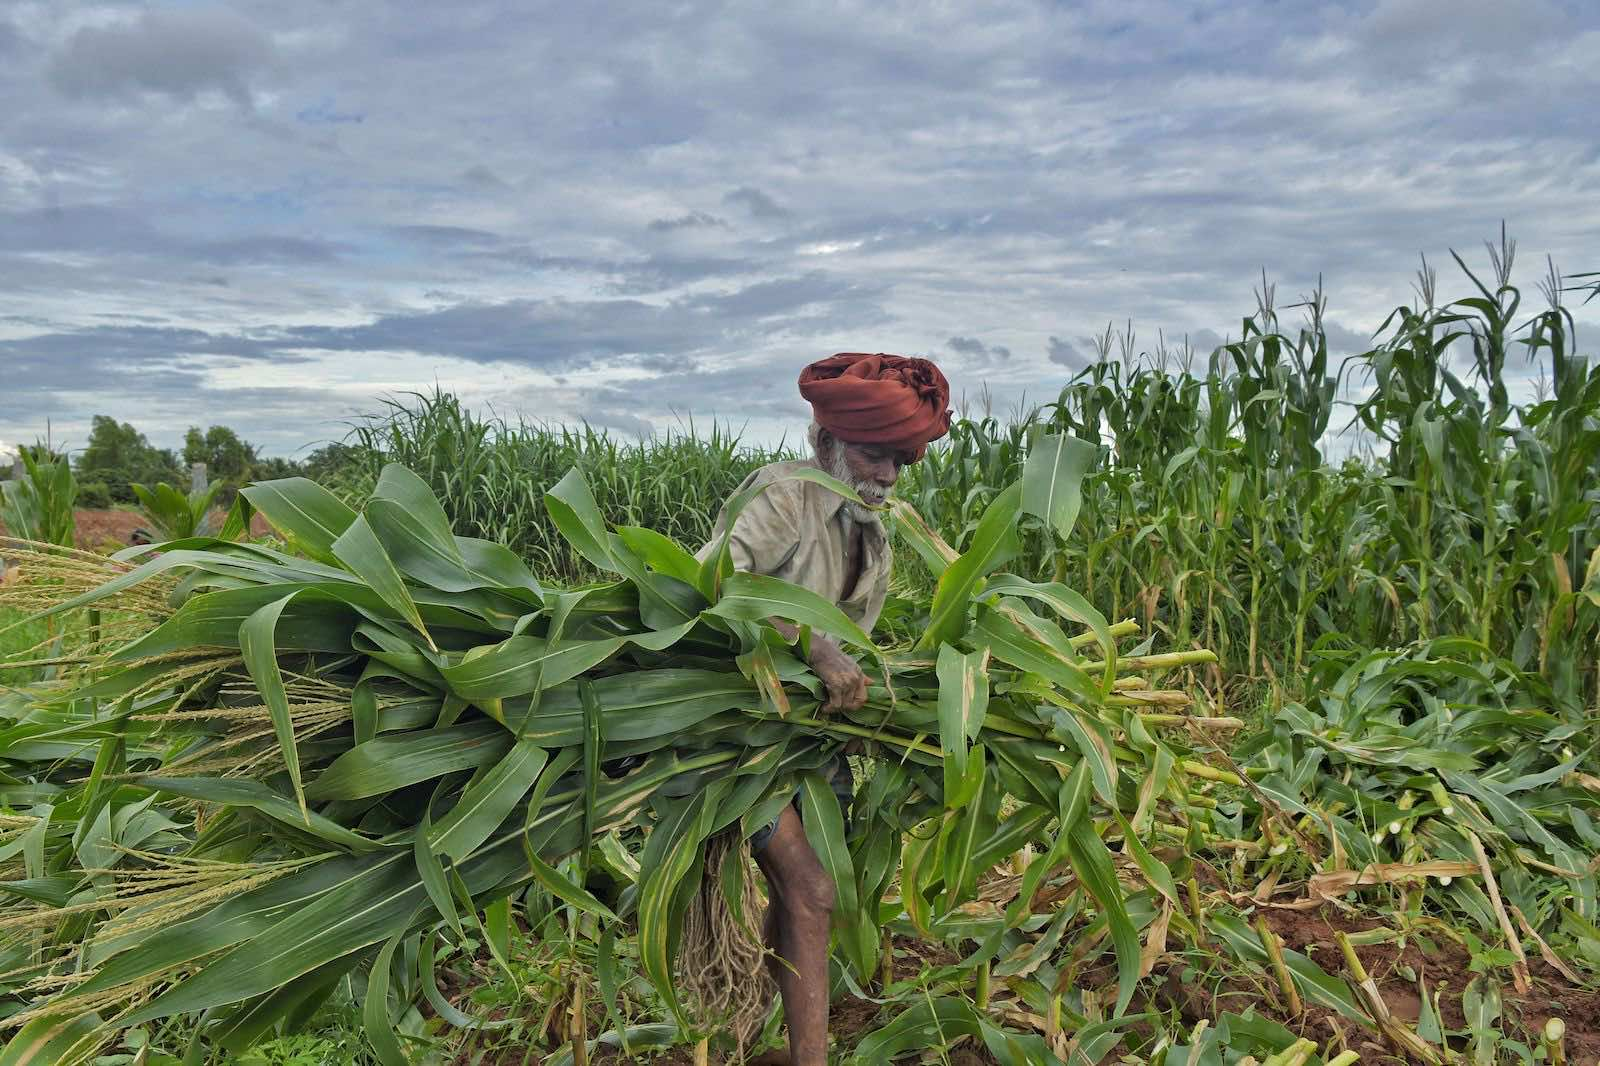 Agriculture market access is Australia's highest priority in trade deal negotiations, but India has been unwilling to make concessions (Manjunath Kiran/AFP via Getty Images)